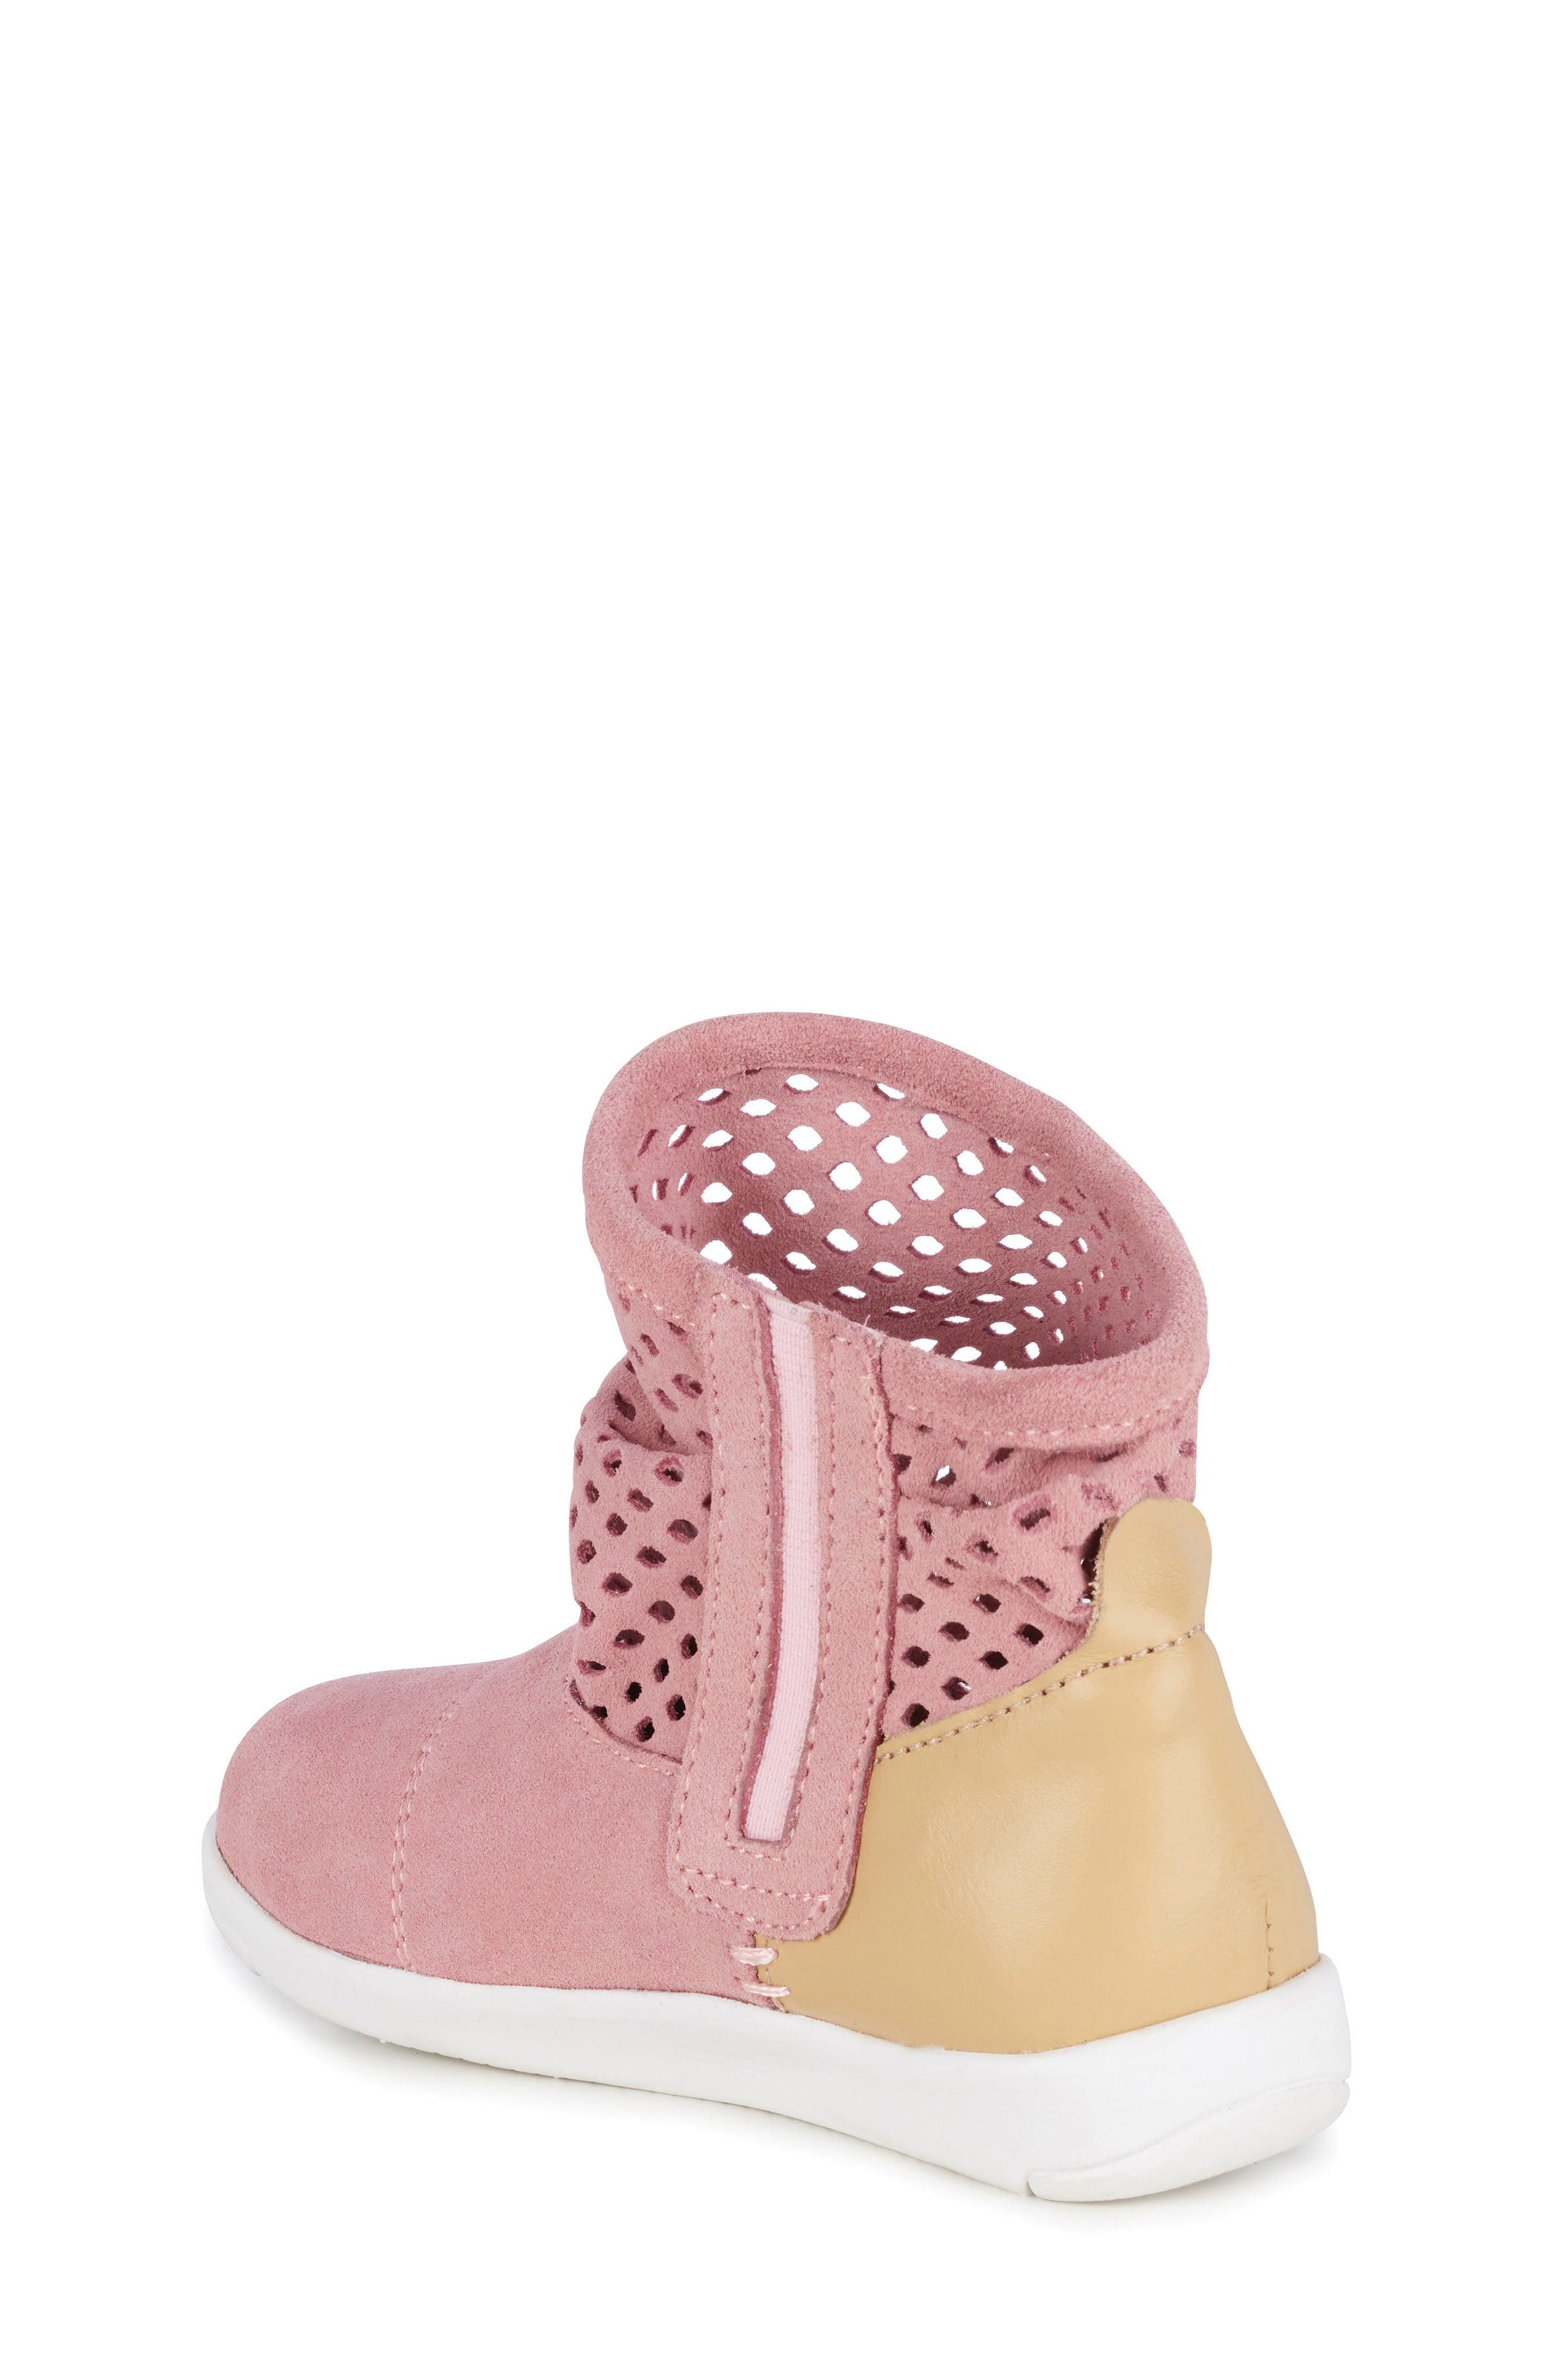 Numeralla Boot,                             Alternate thumbnail 2, color,                             Pale Pink Suede